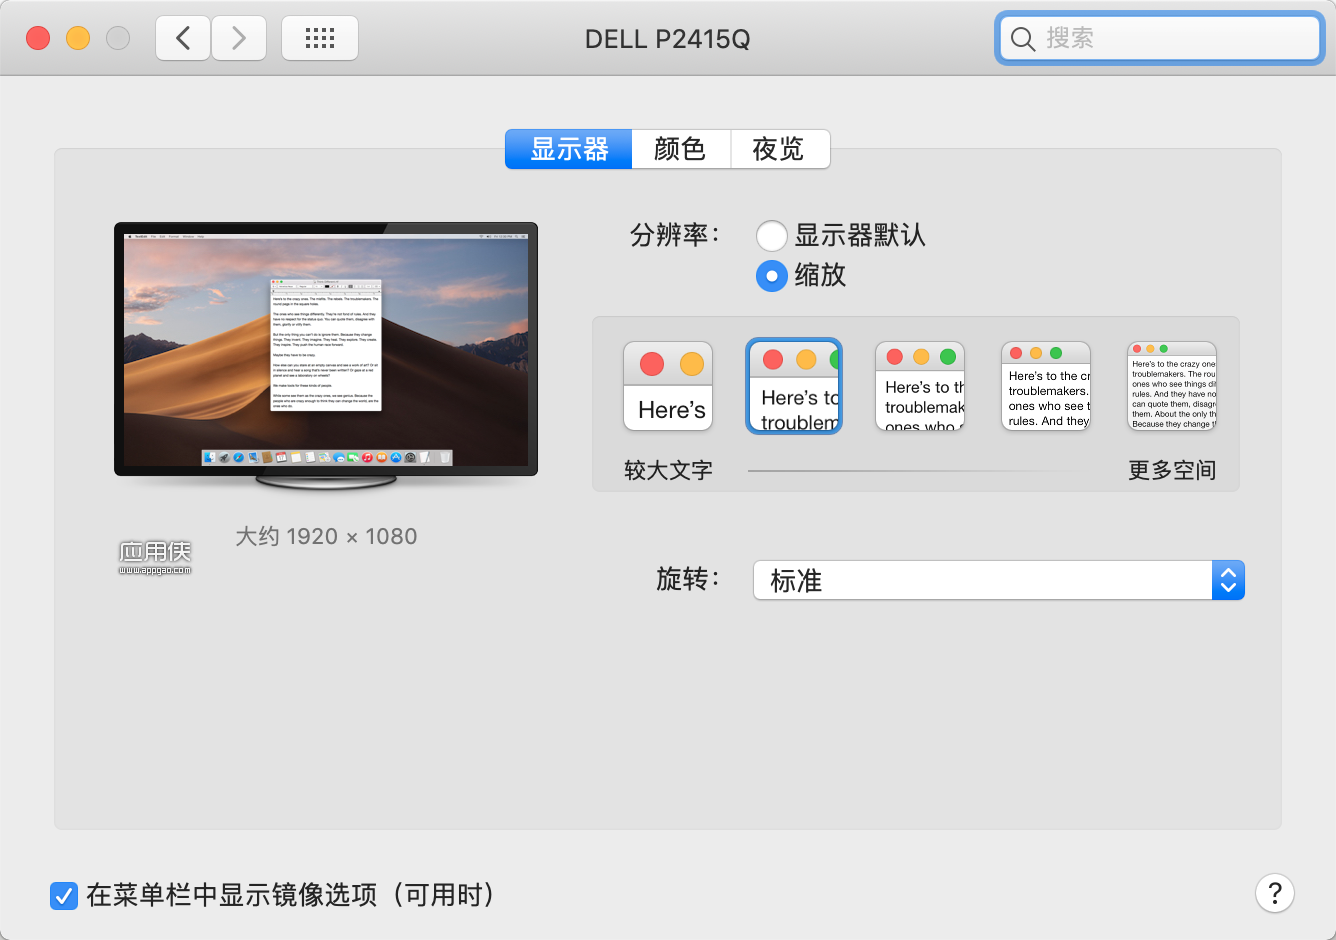 DELL_P2415Q-1.png